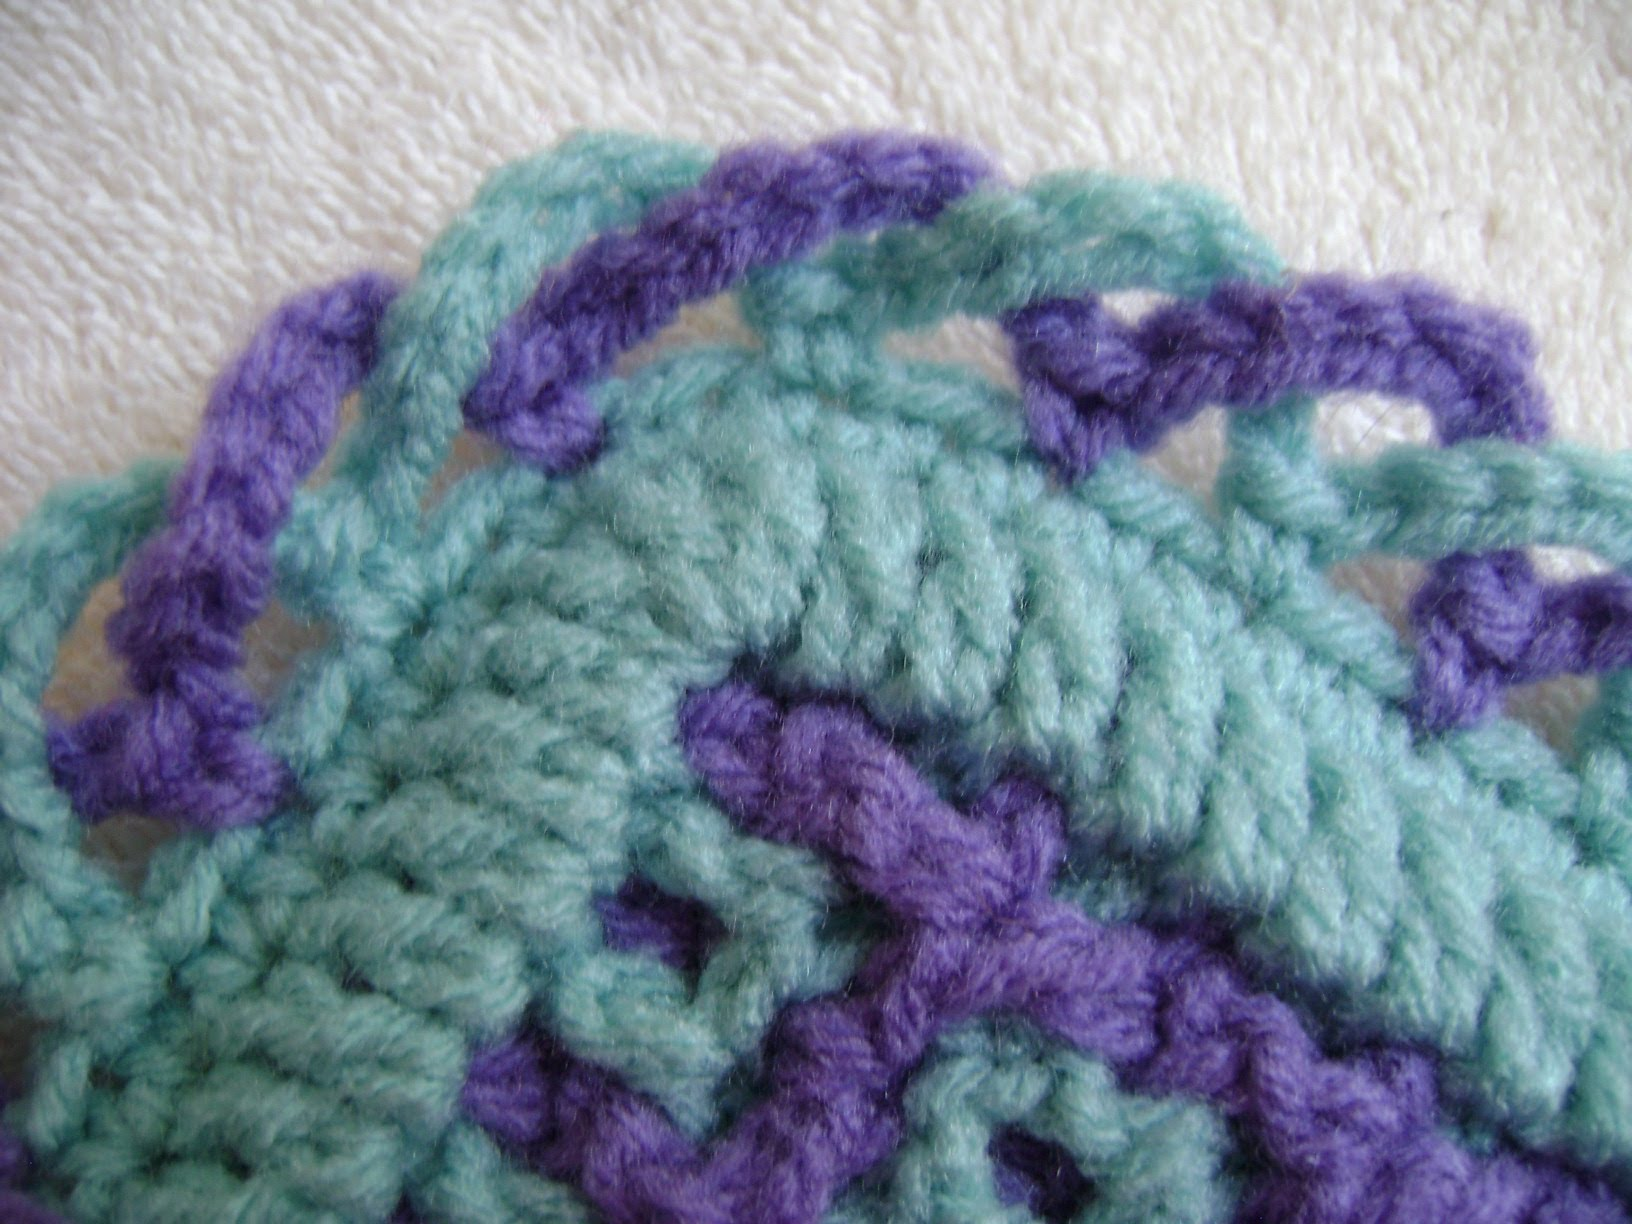 Crochet Blanket Edging- A Perfect Finish!